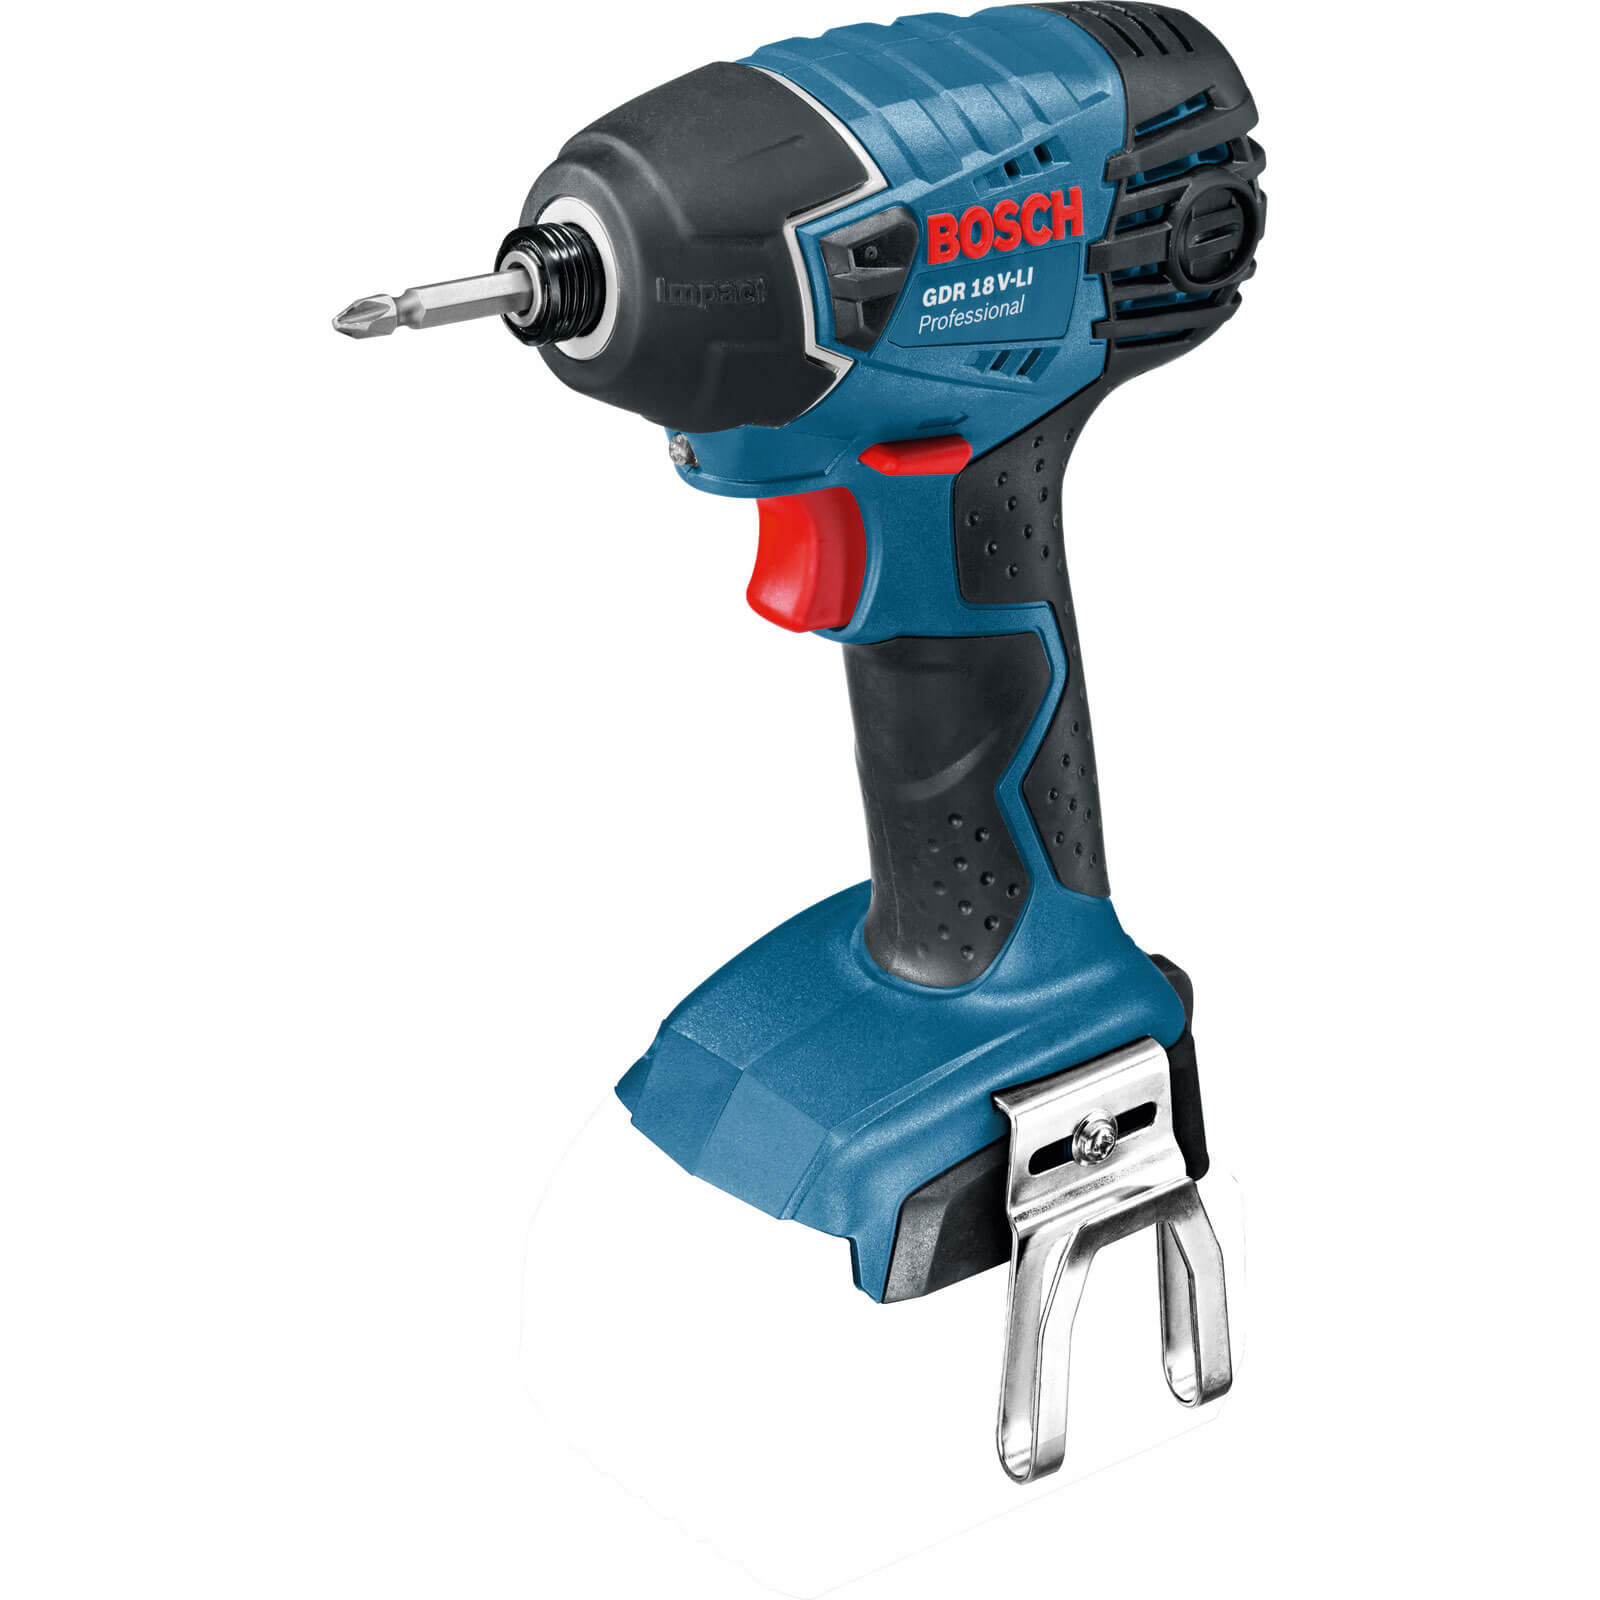 Bosch GDR 18VLIN 18v Cordless Impact Driver without Battery or Charger